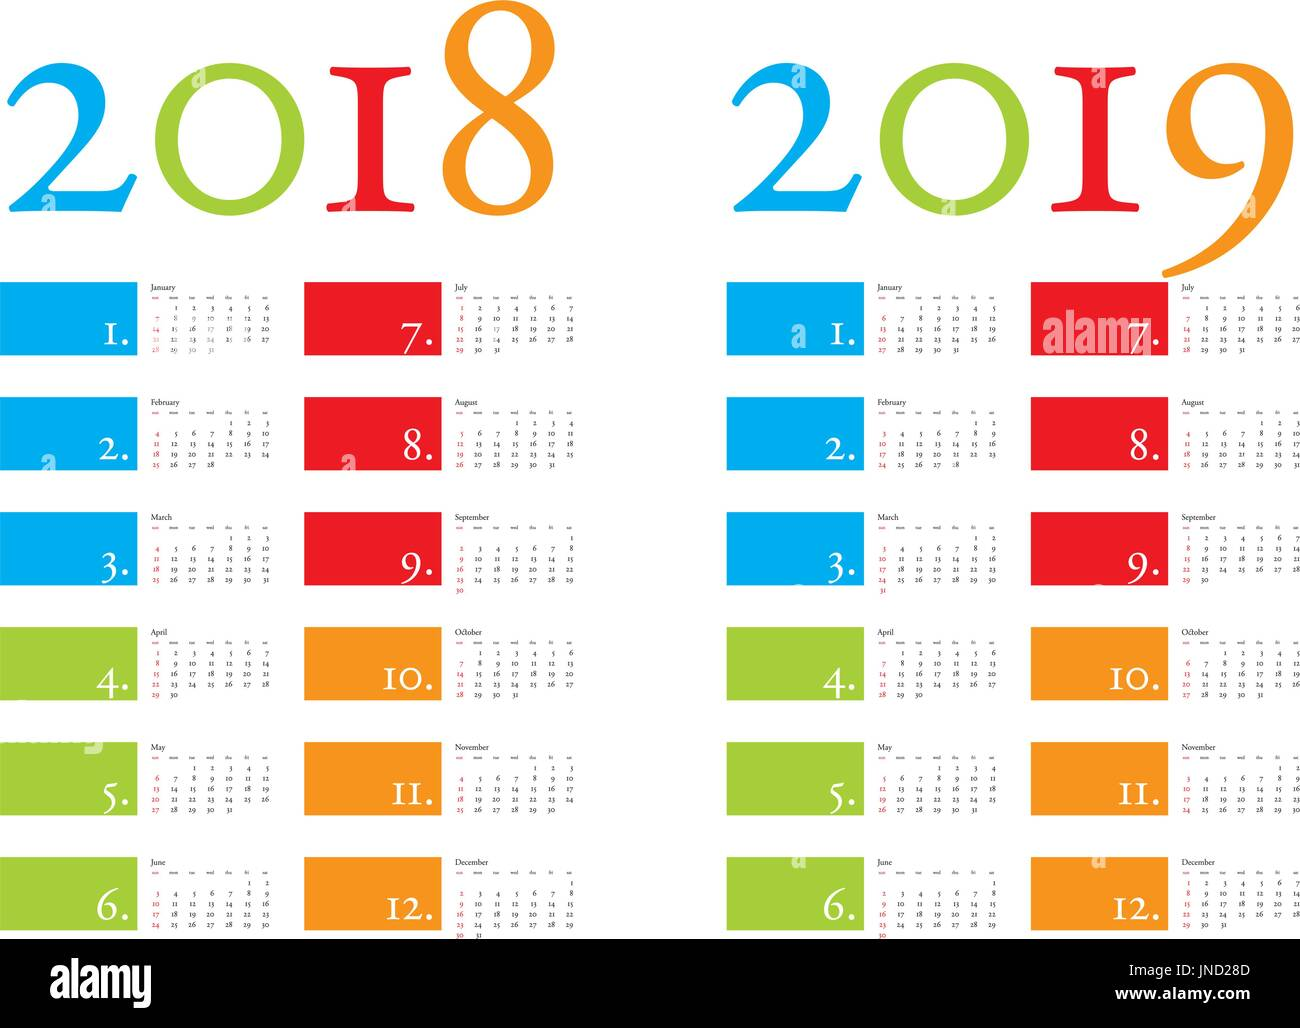 Calendar Design Eps File : Colorful and elegant calendar for years in